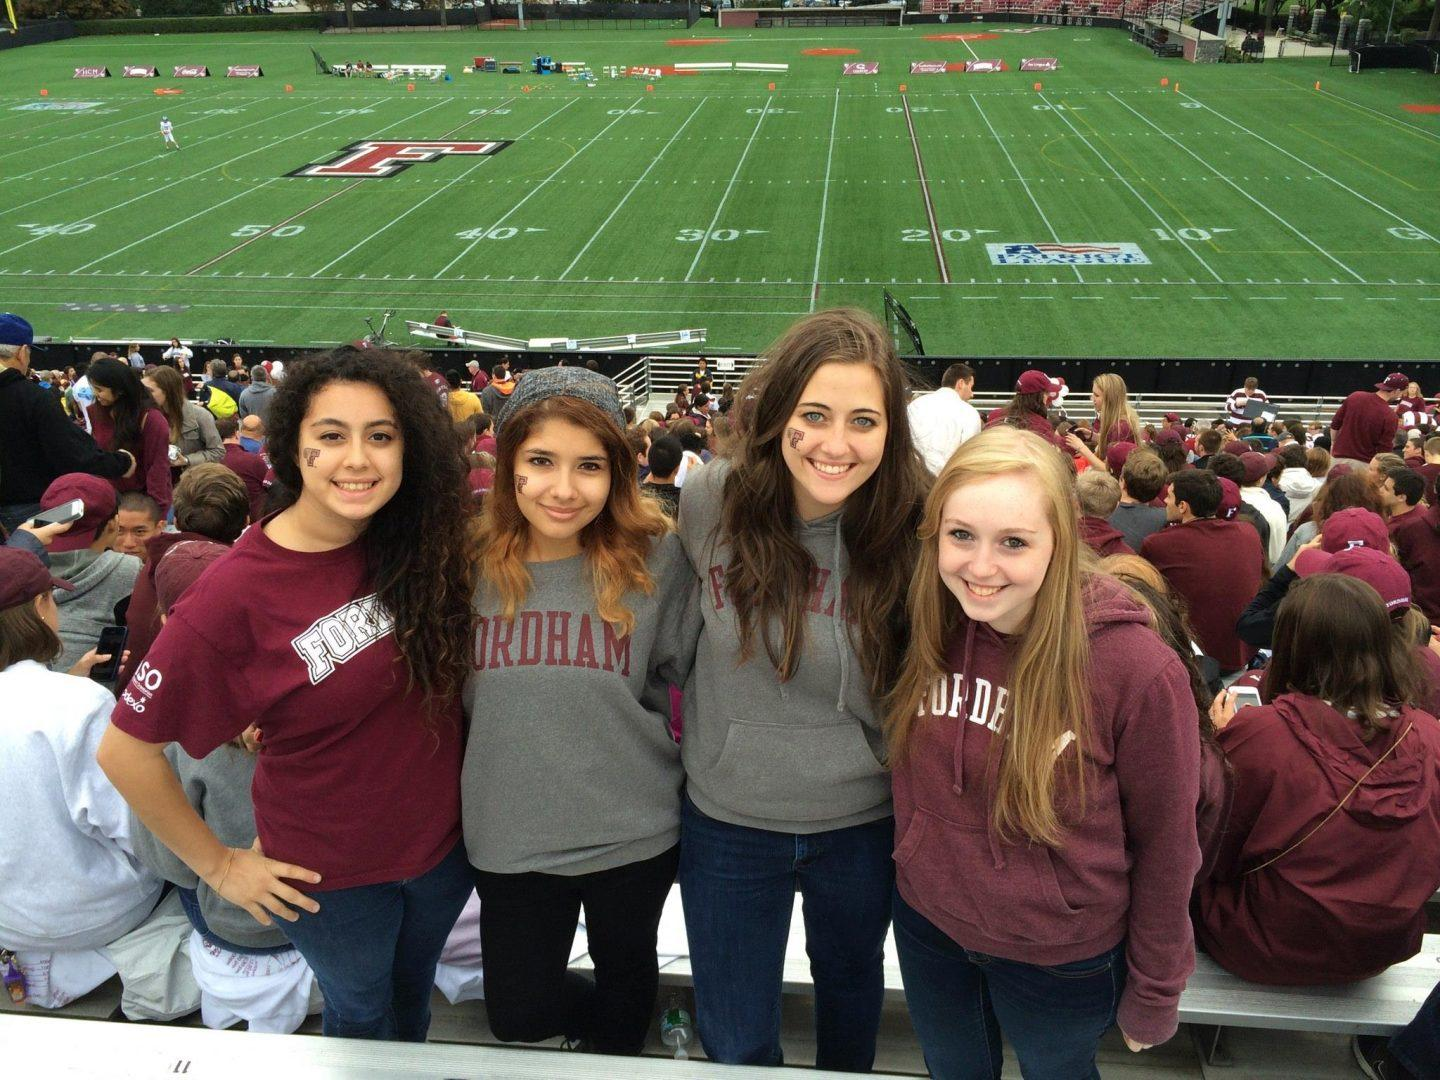 Fordham Students Aryana Azari (FCLC '17), Brianna Rivera (FCLC '17), Katie Kirtland (FCLC '17) and Jenny McNary (FCLC '17) at the 2014 Homecoming Game. Photo courtesy of Katie Kirtland/The Observer